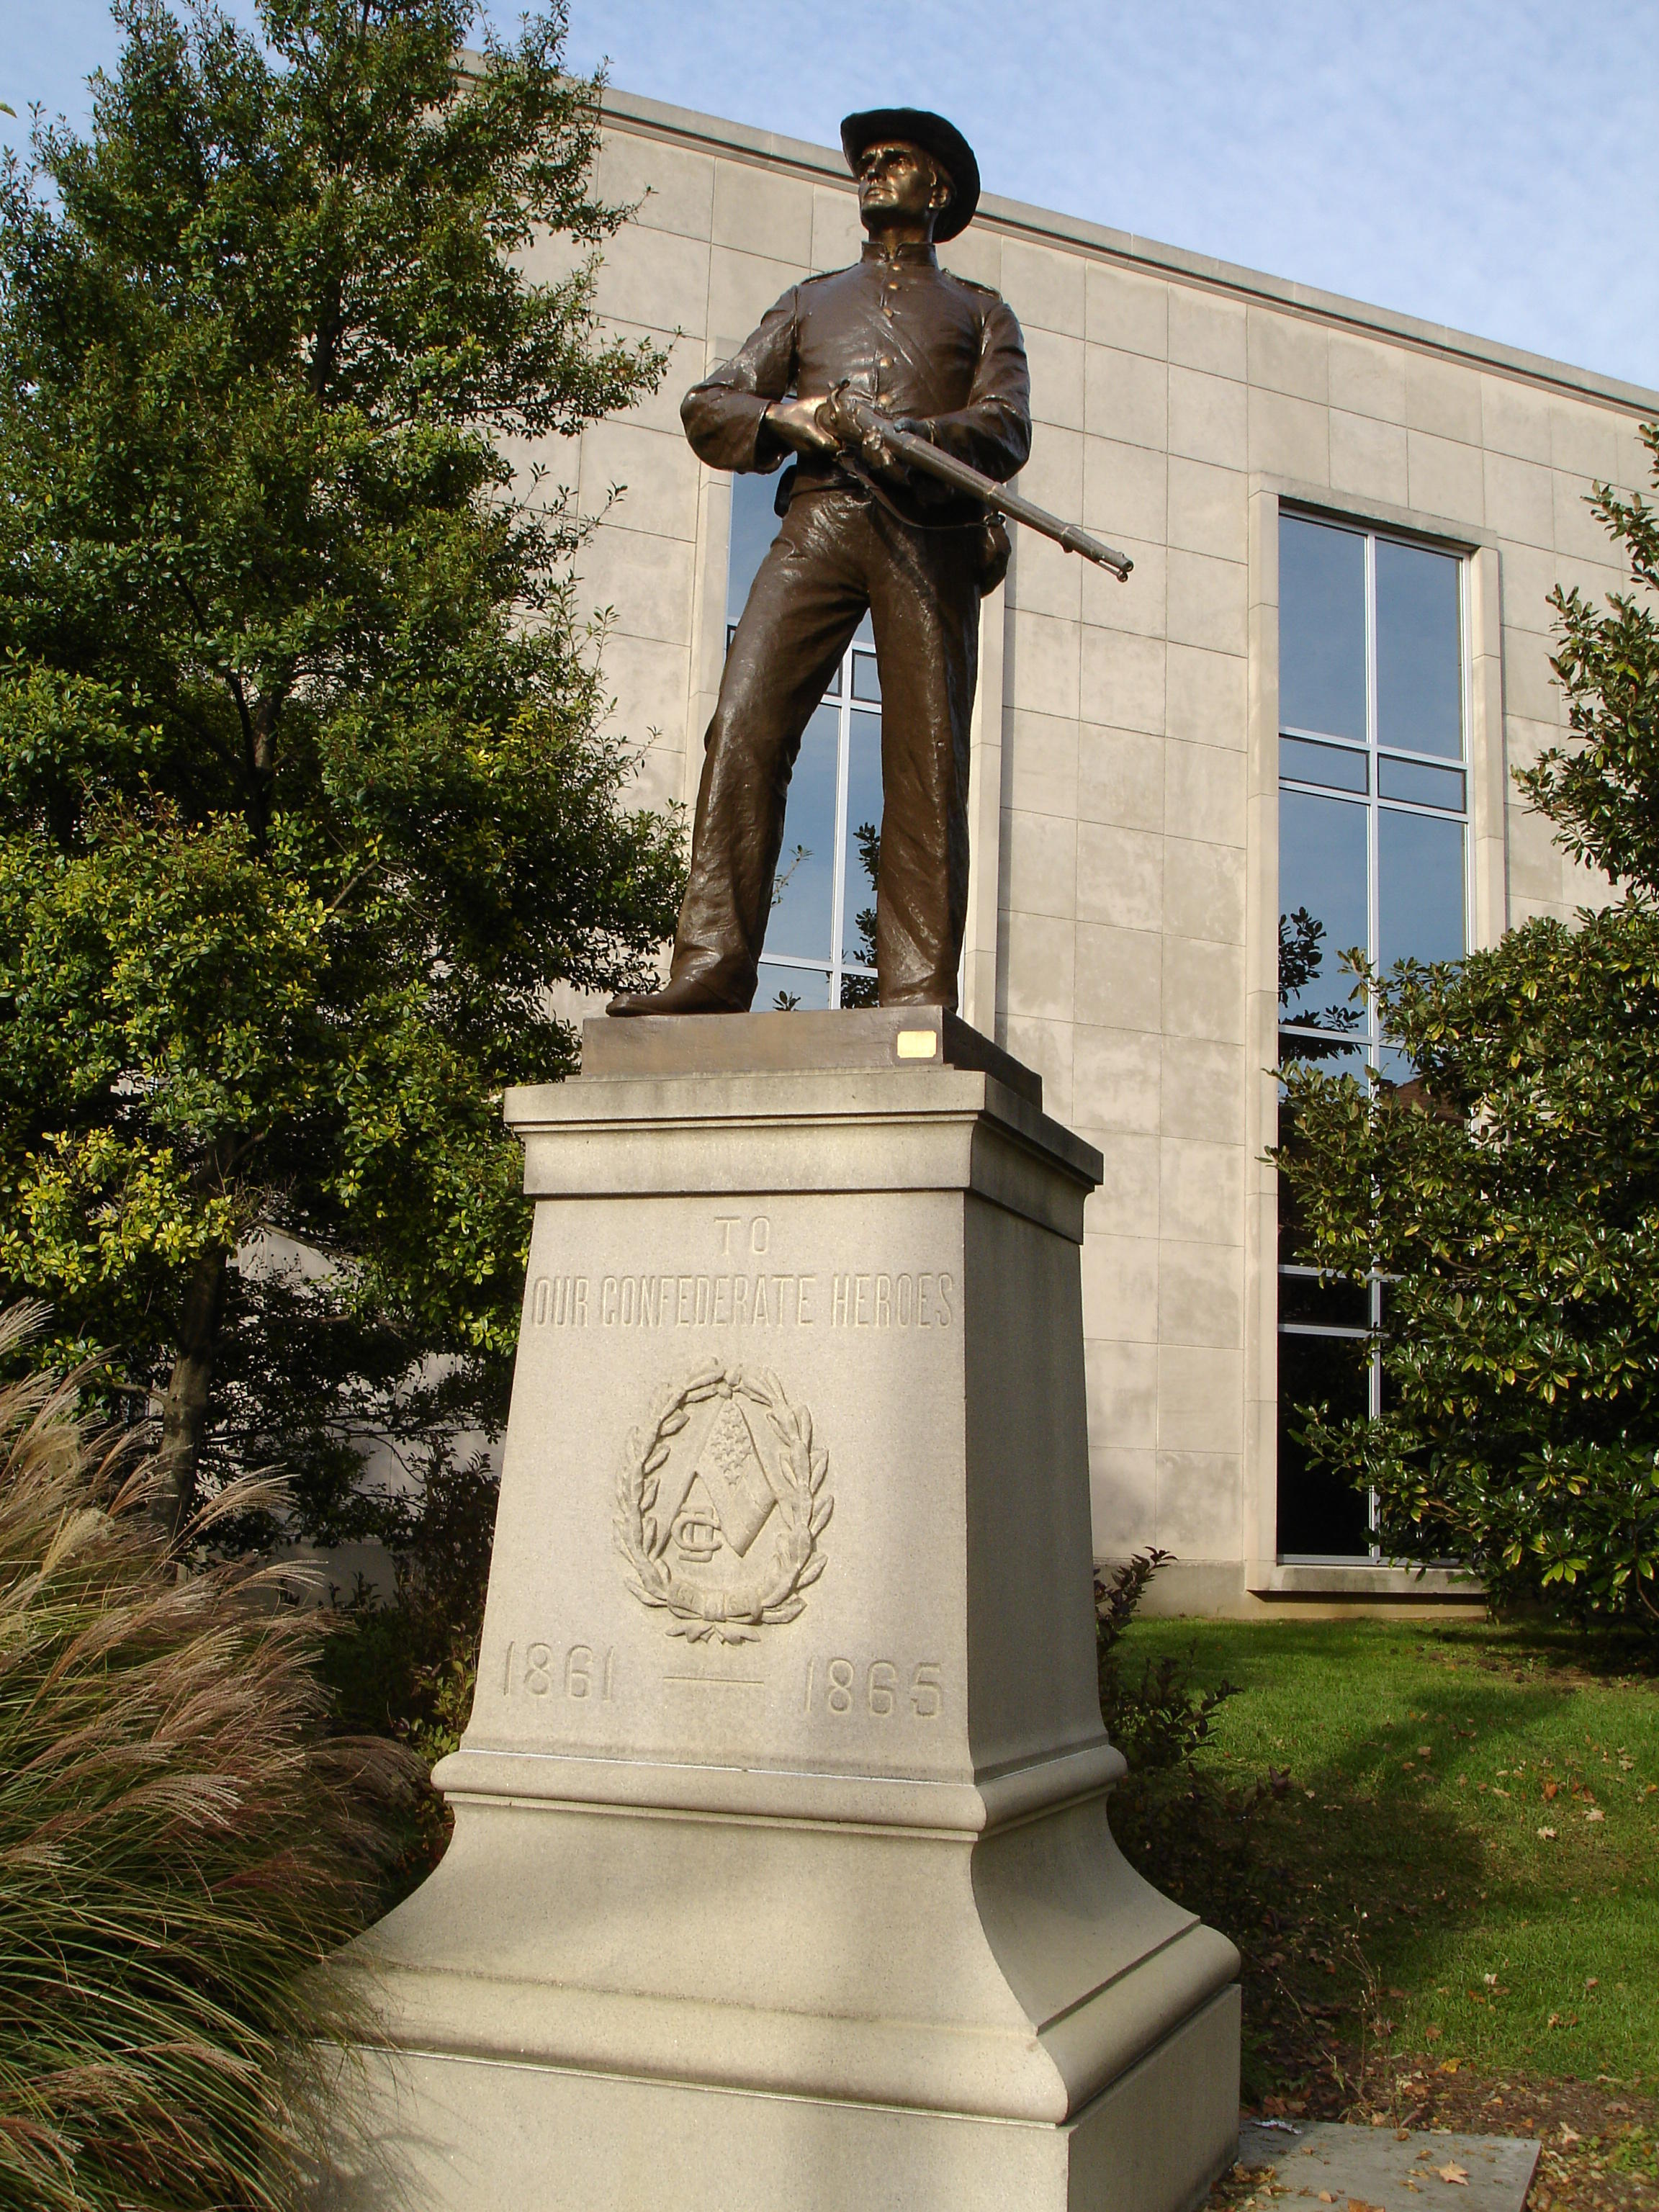 https://mediad.publicbroadcasting.net/p/wkms/files/styles/x_large/public/201708/OwensboroConfederateStatue.jpg